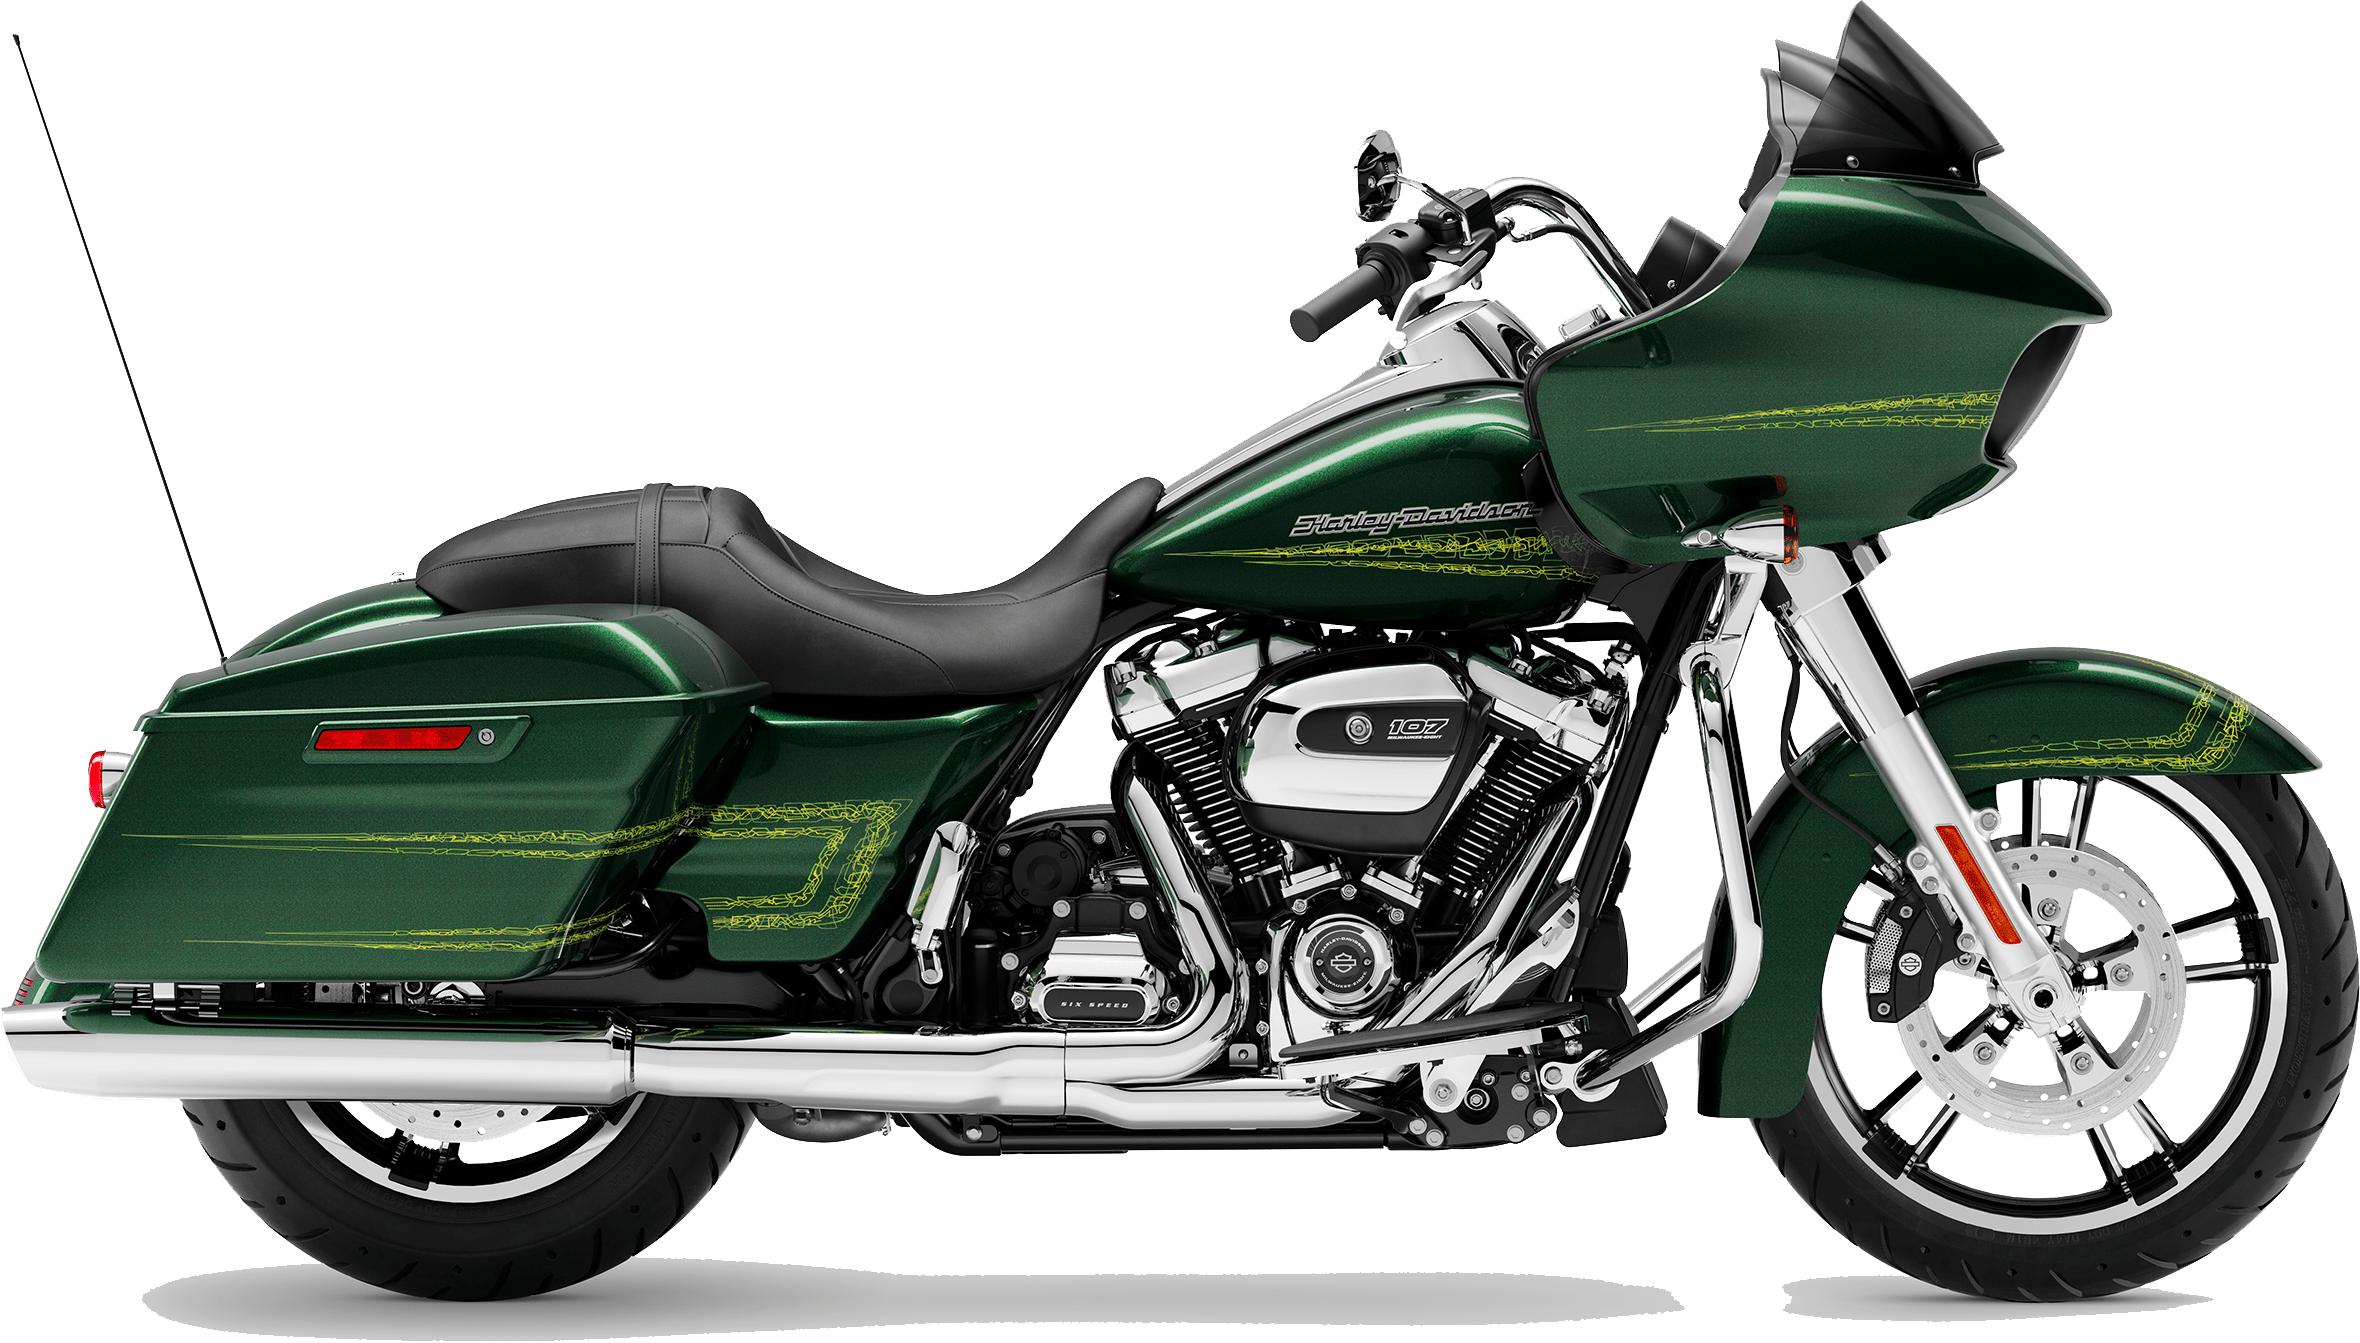 2019 Harley-Davidson H-D Touring Road Glide Kinetic Green